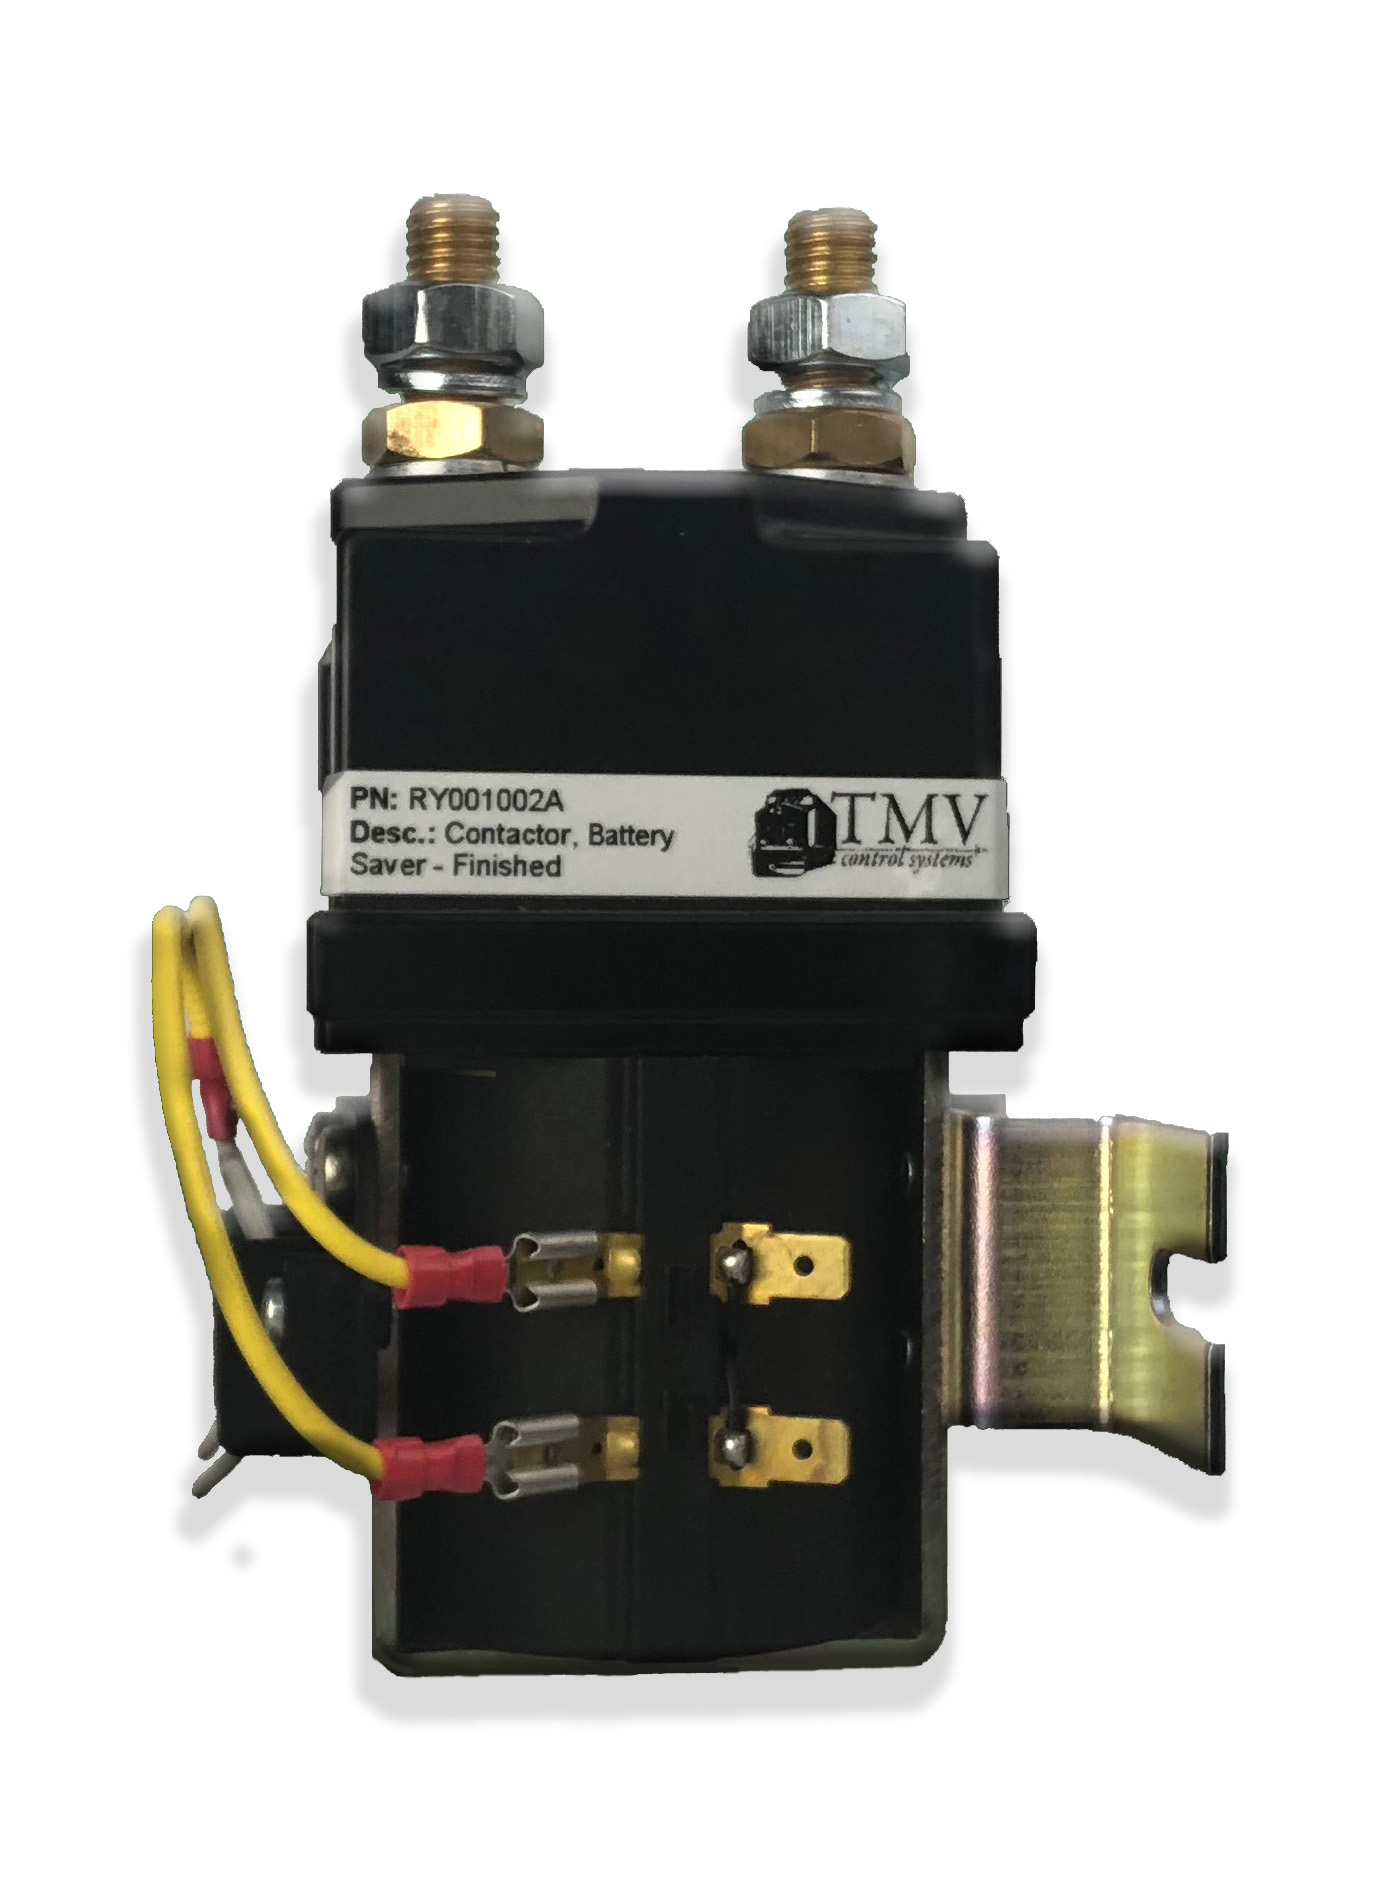 TMV contactor, to go with Battery Saver as part of battery saver kit